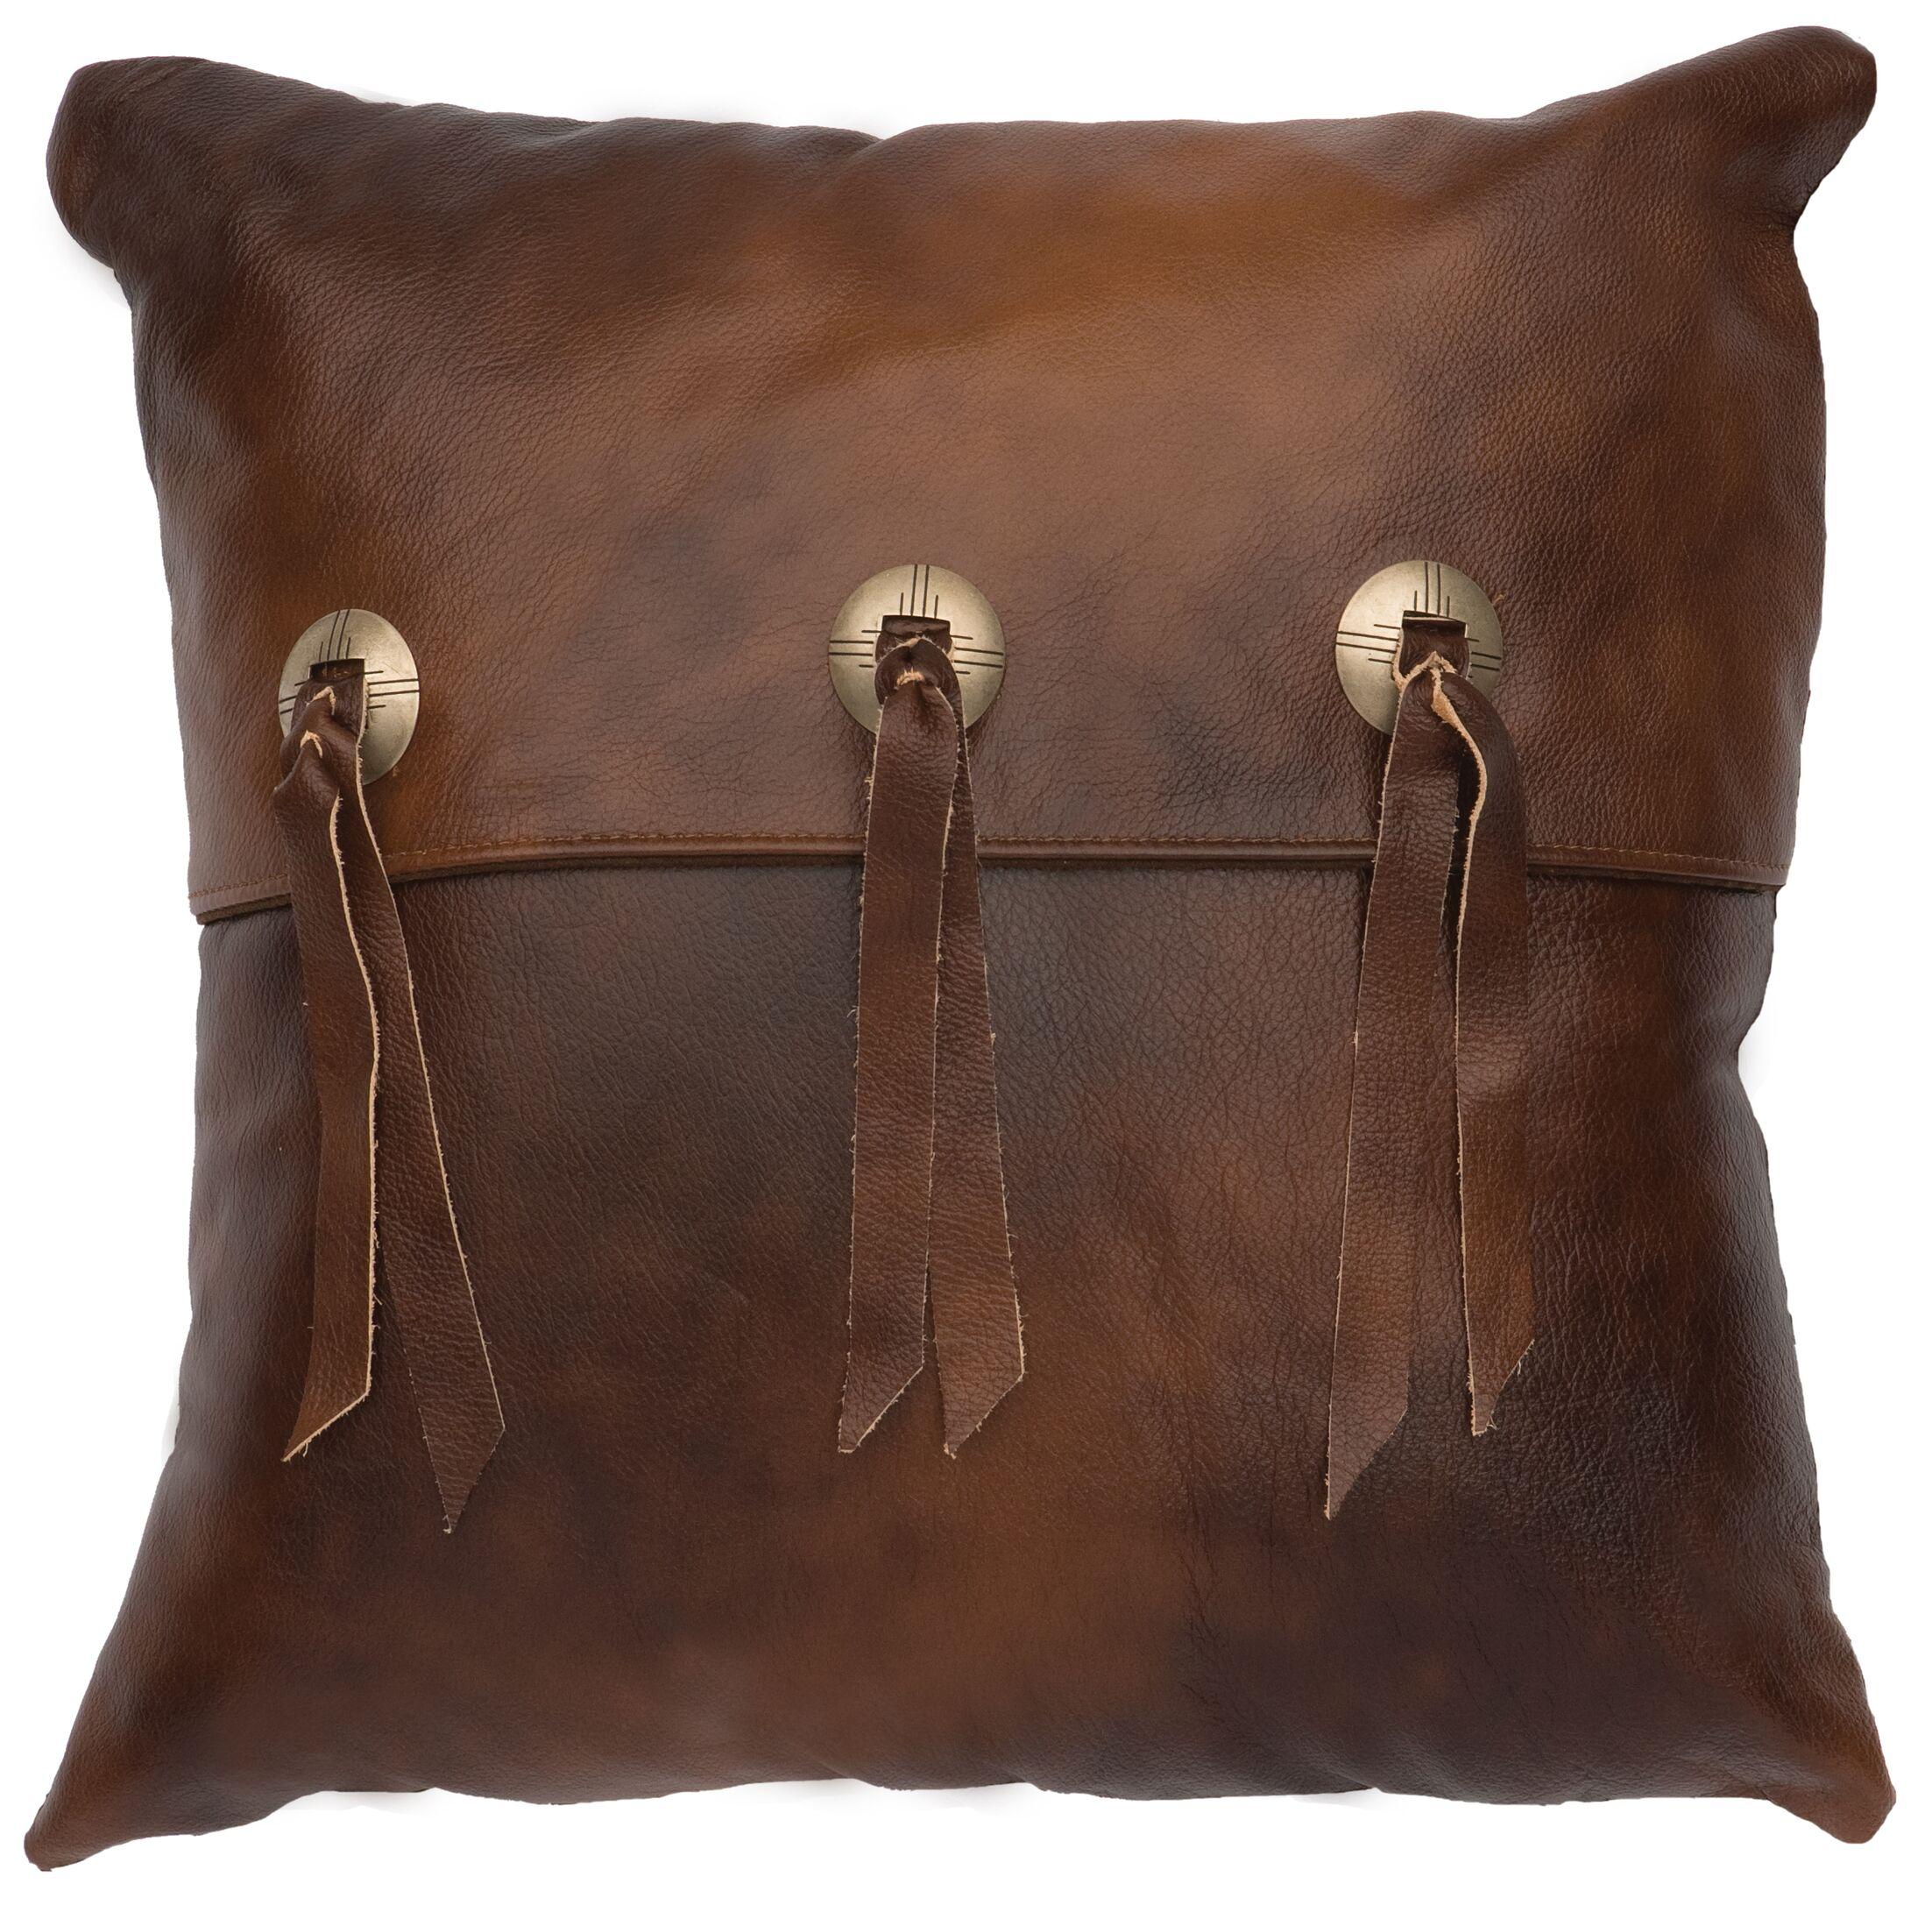 Painted Desert II Leather Throw Pillow